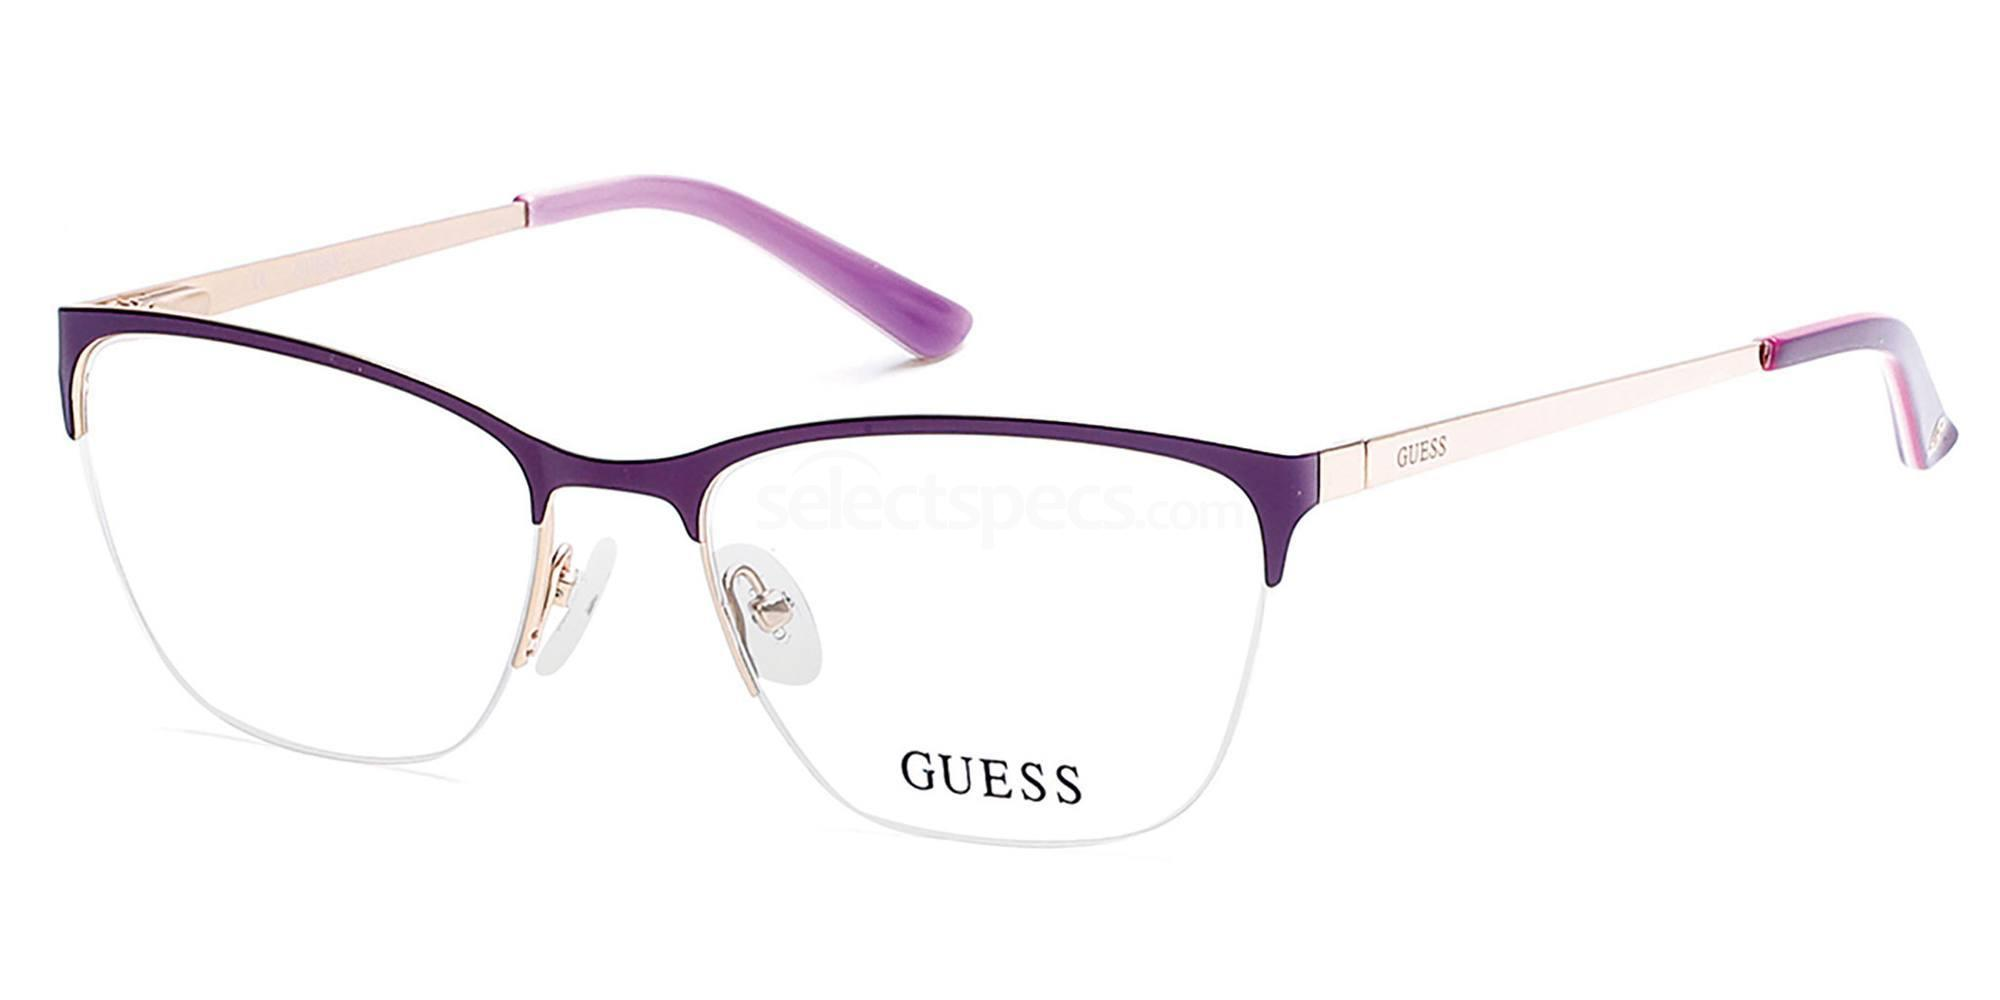 081 GU2543 Glasses, Guess